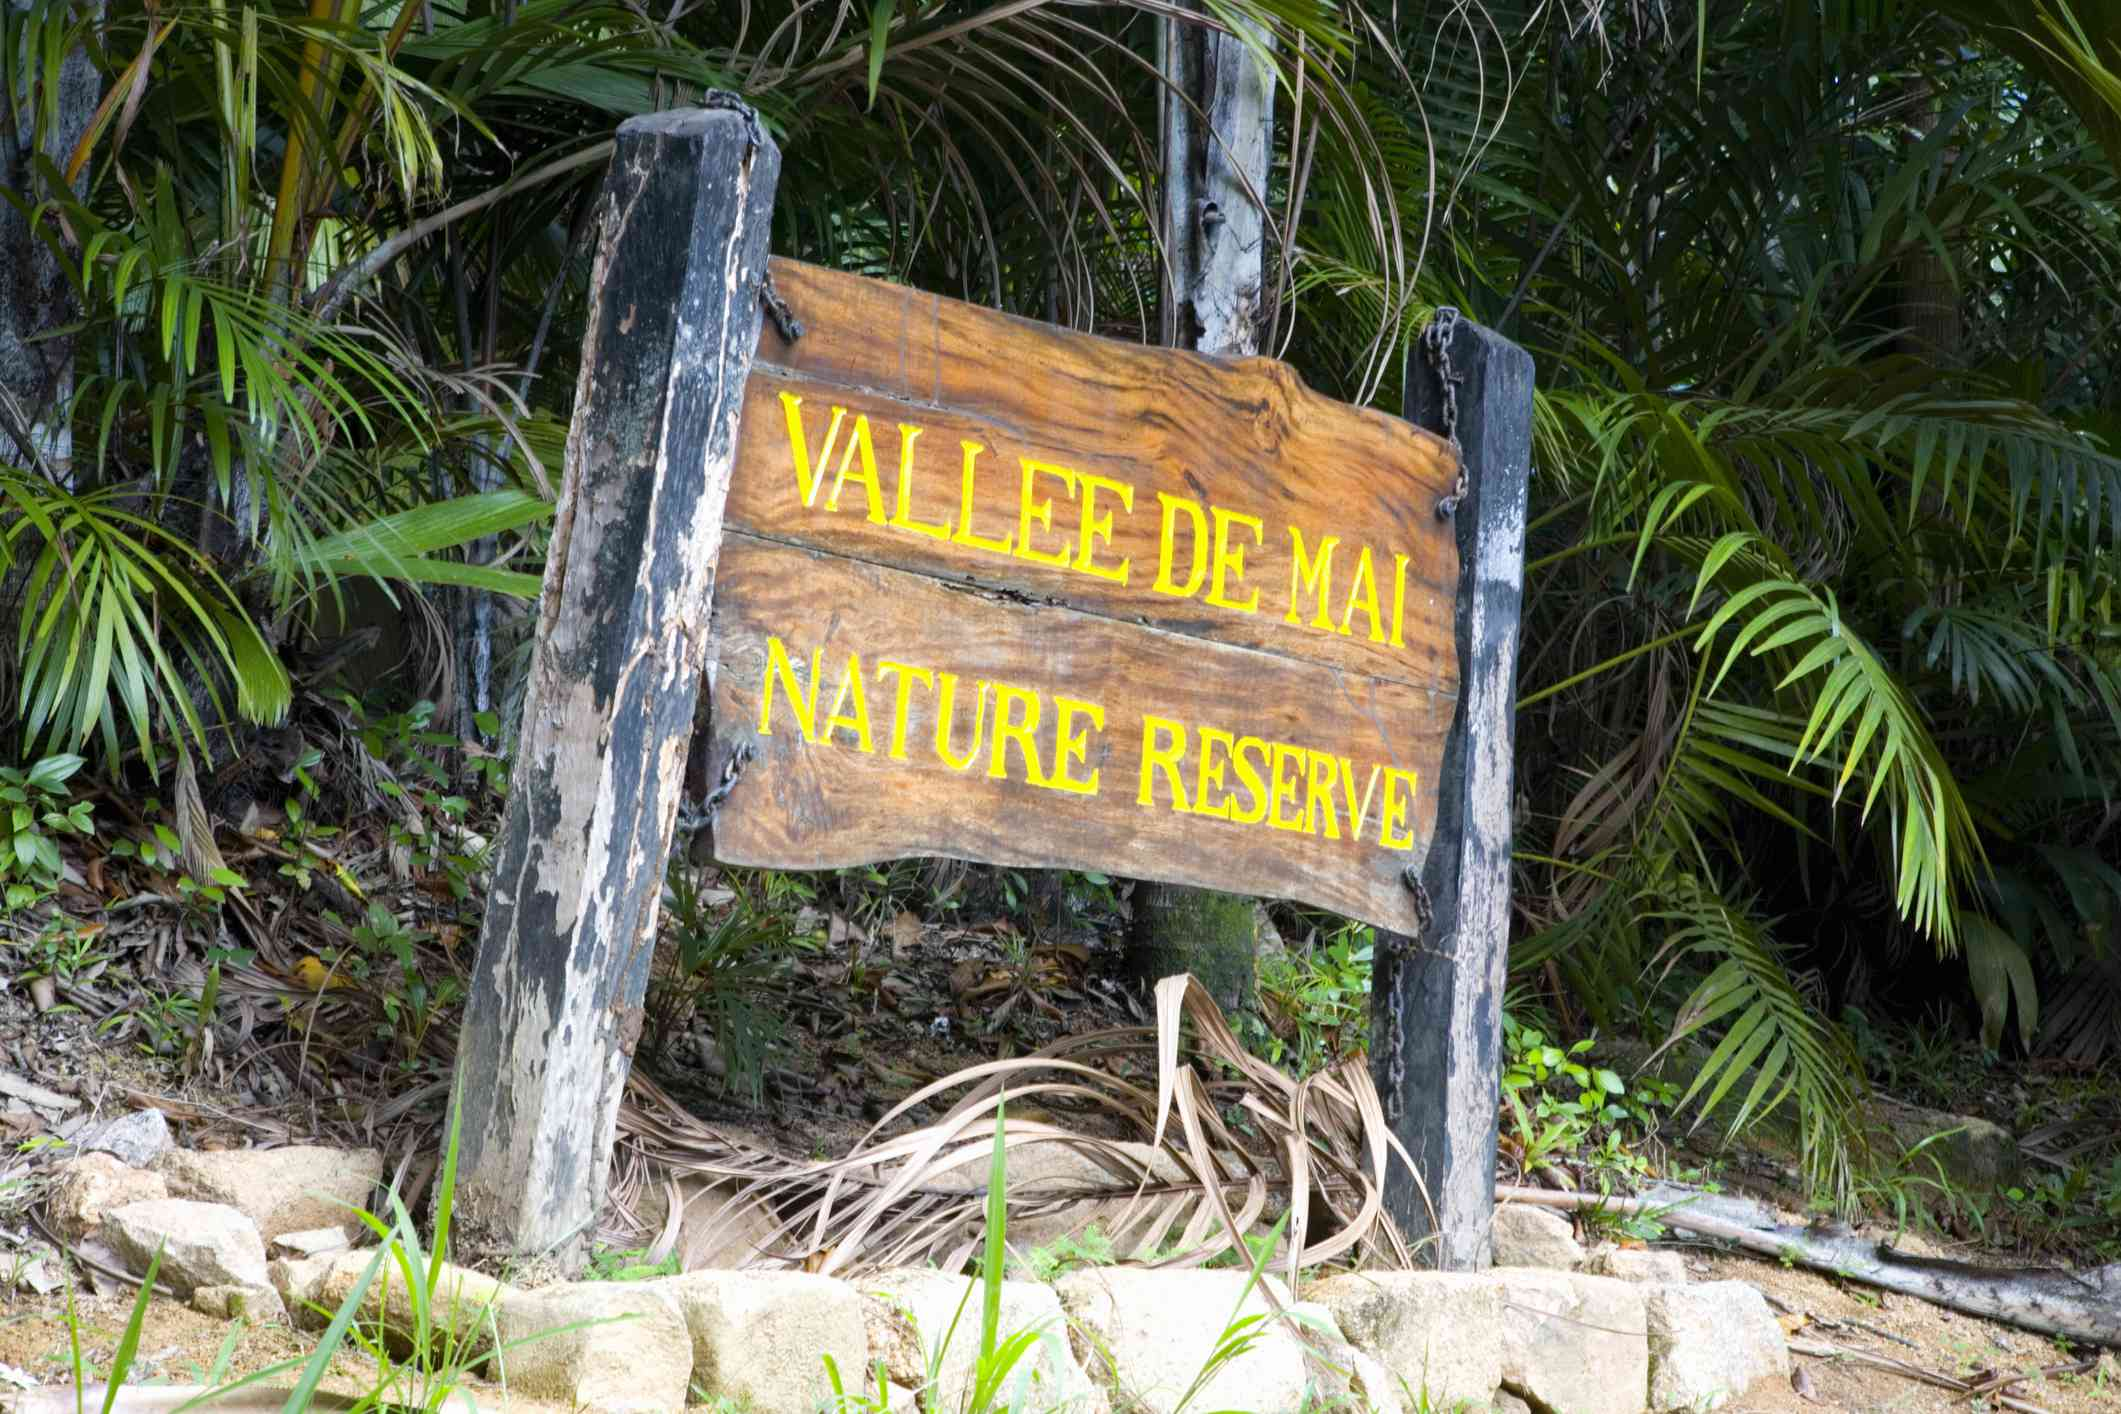 Sign marking entrance to the UNESCO listed Vallee de Mai nature reserve